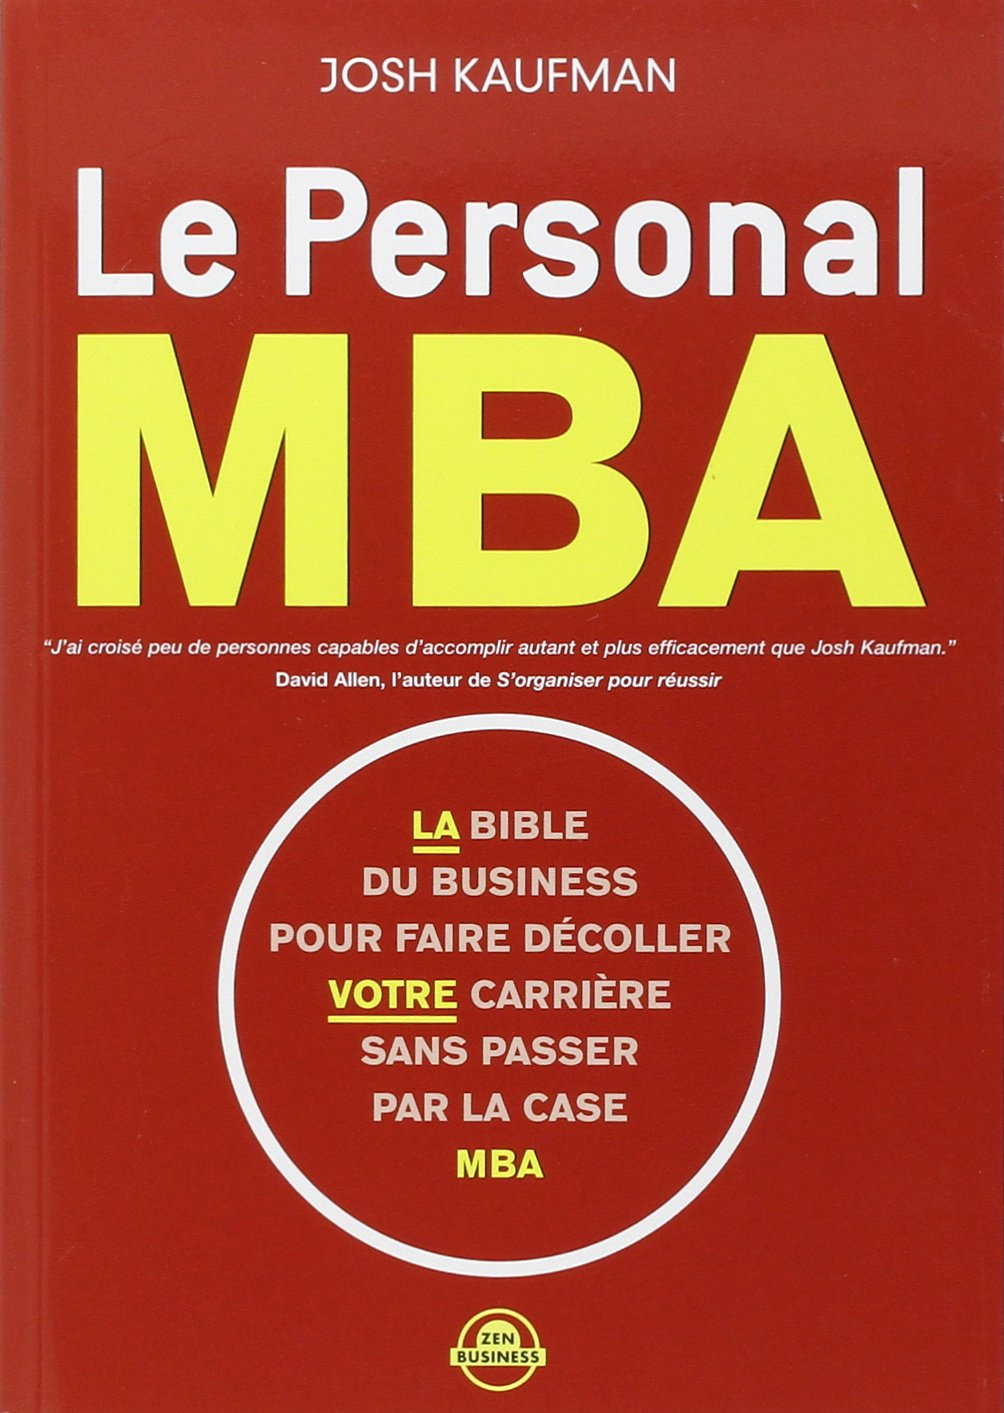 Le Personal MBA: Amazon co uk: Josh Kaufman, Sabine Rolland